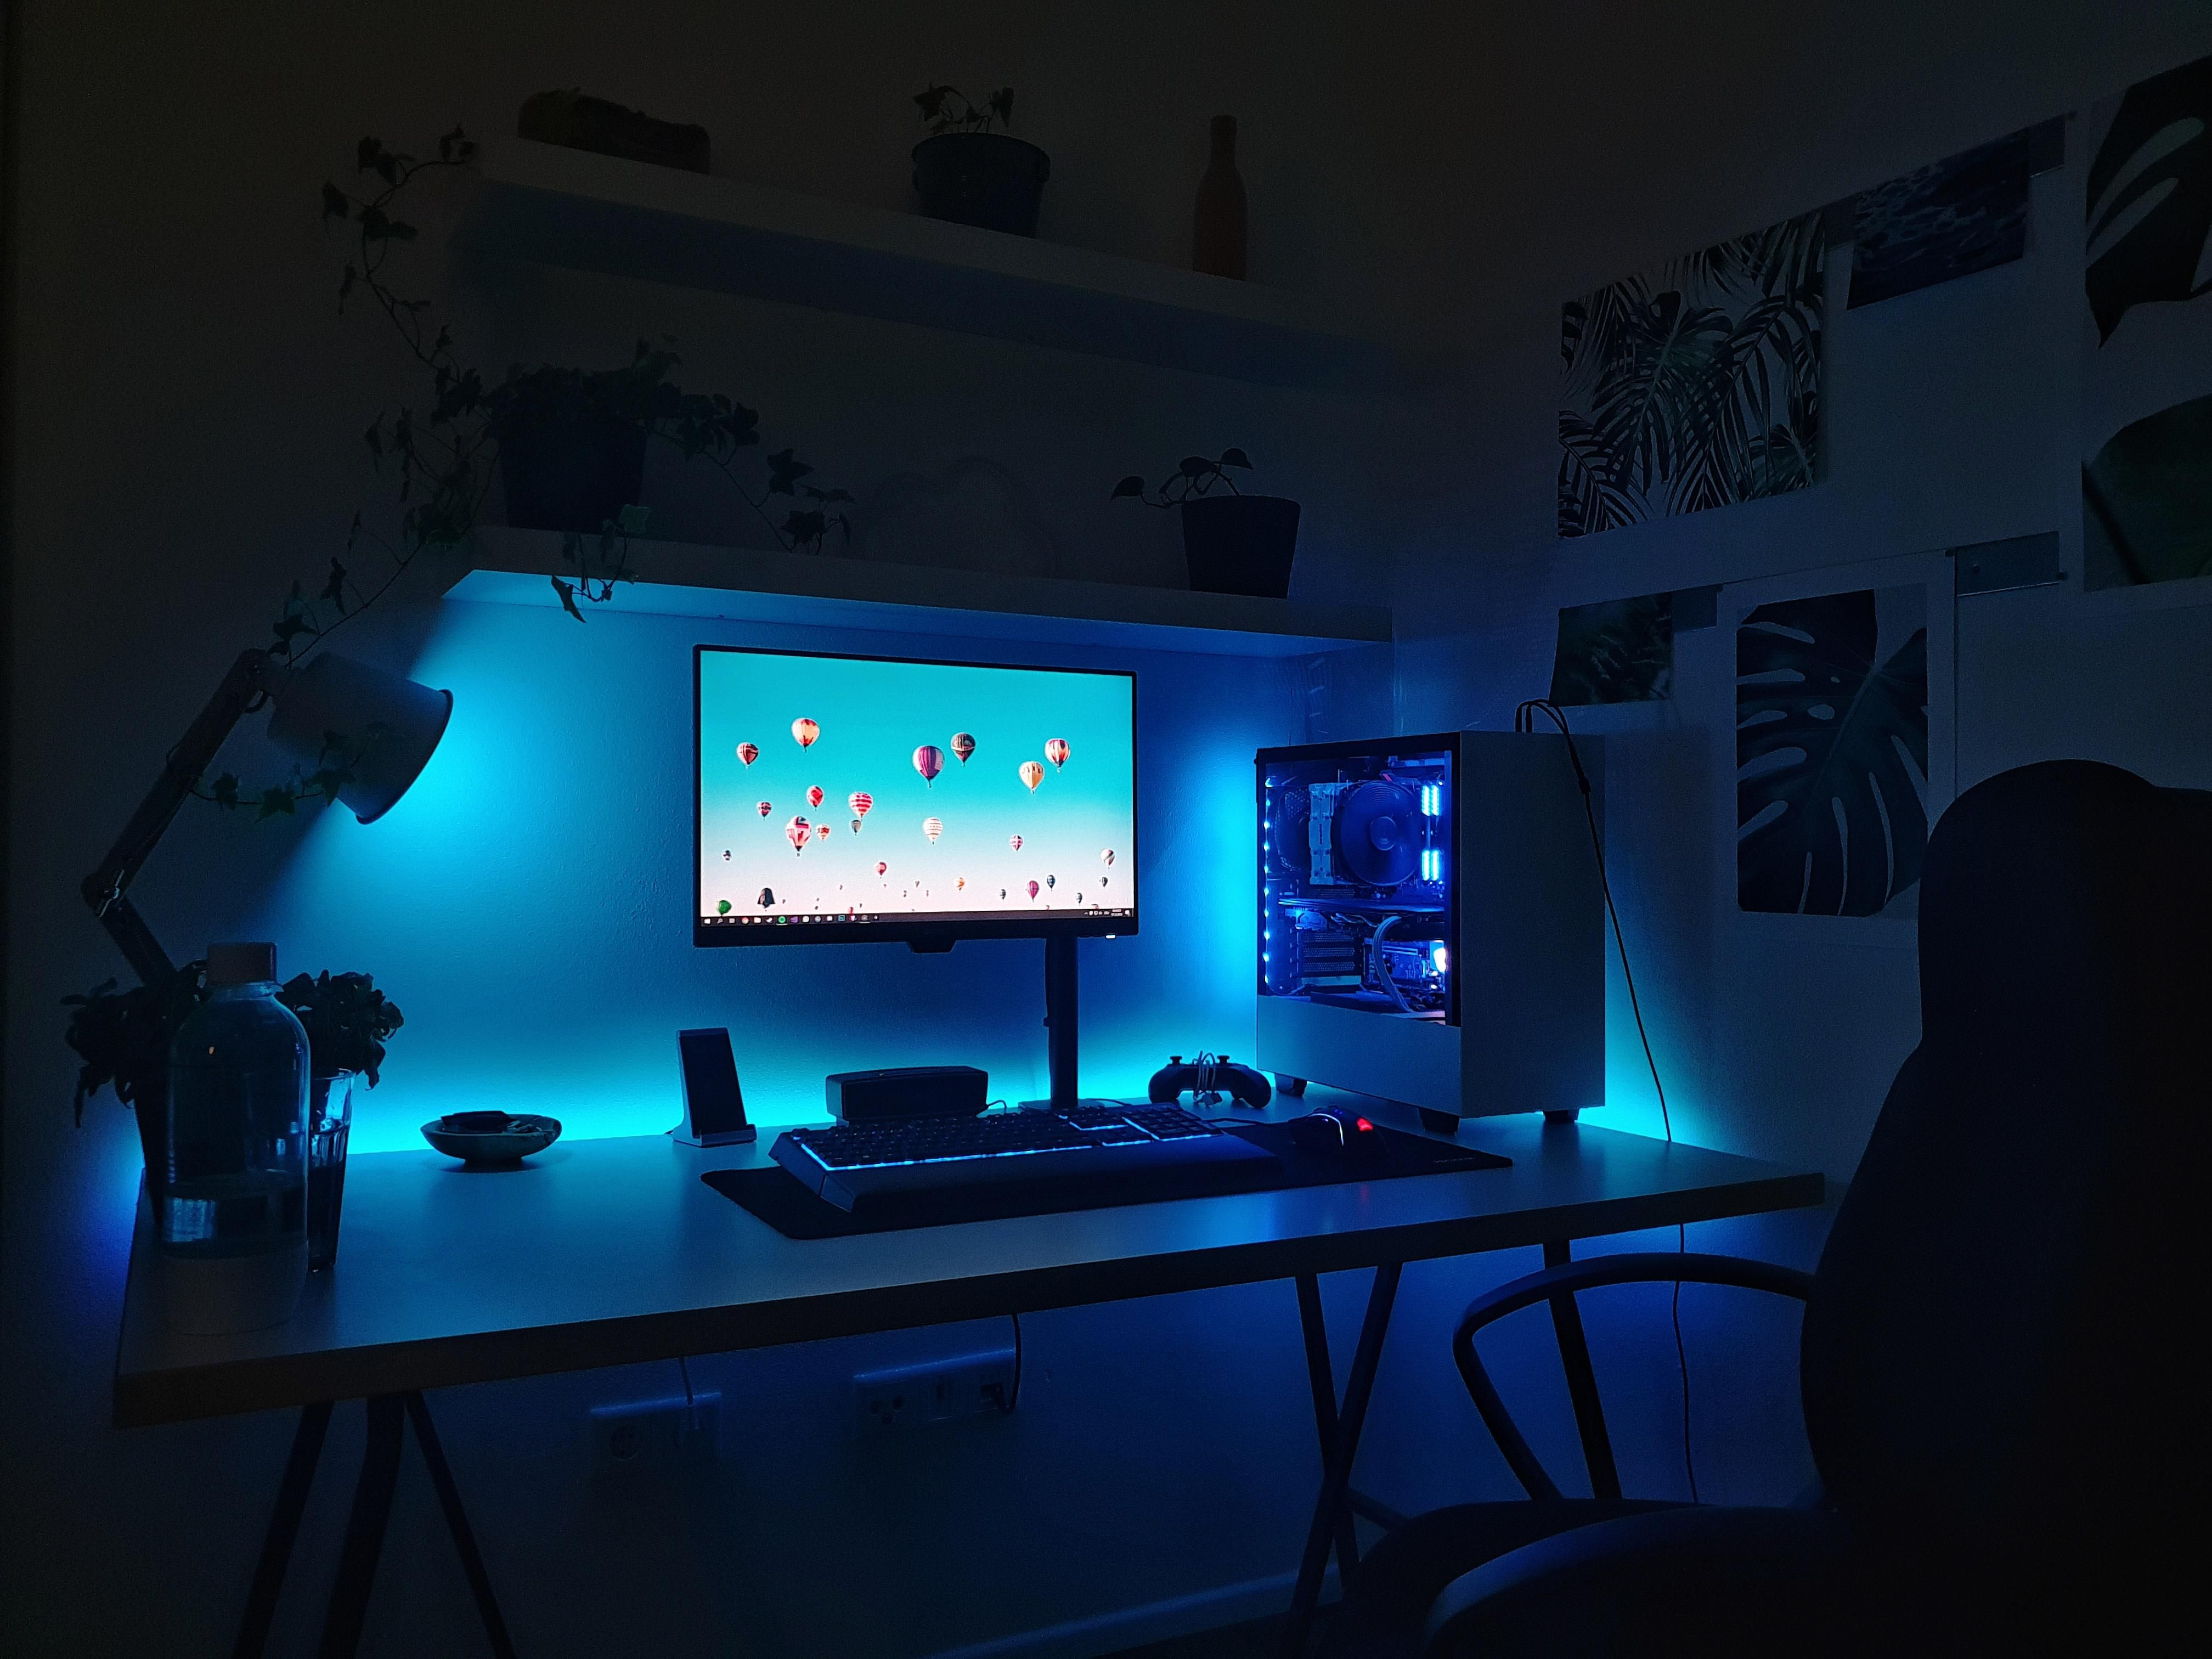 My current simple setup. Getting a second monitor for